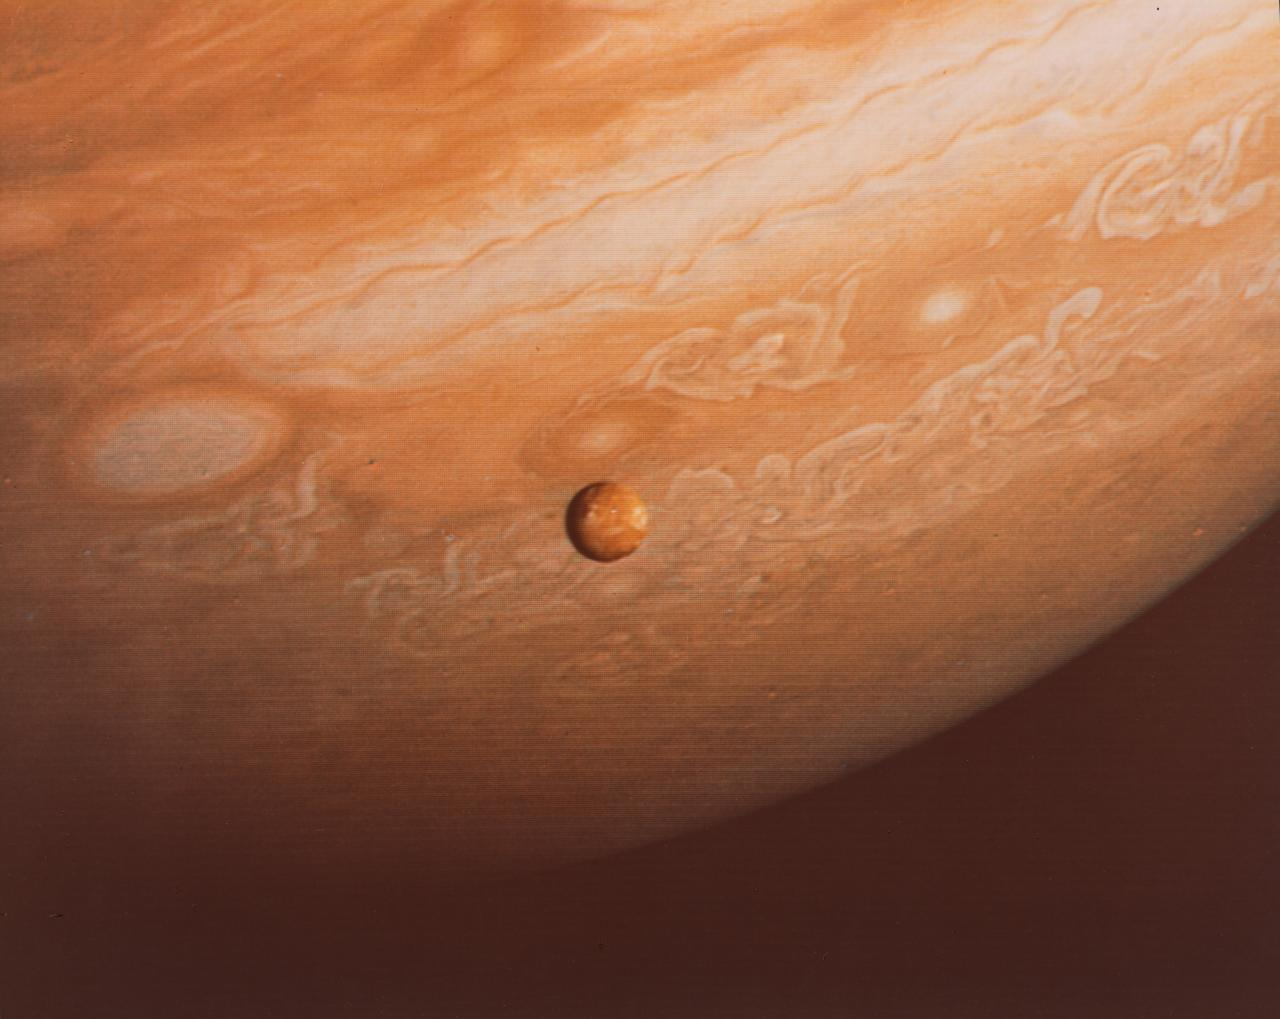 Voyager 2 photo of southern hemisphere of Jupiter showing its moon Io, on 25 June 1979